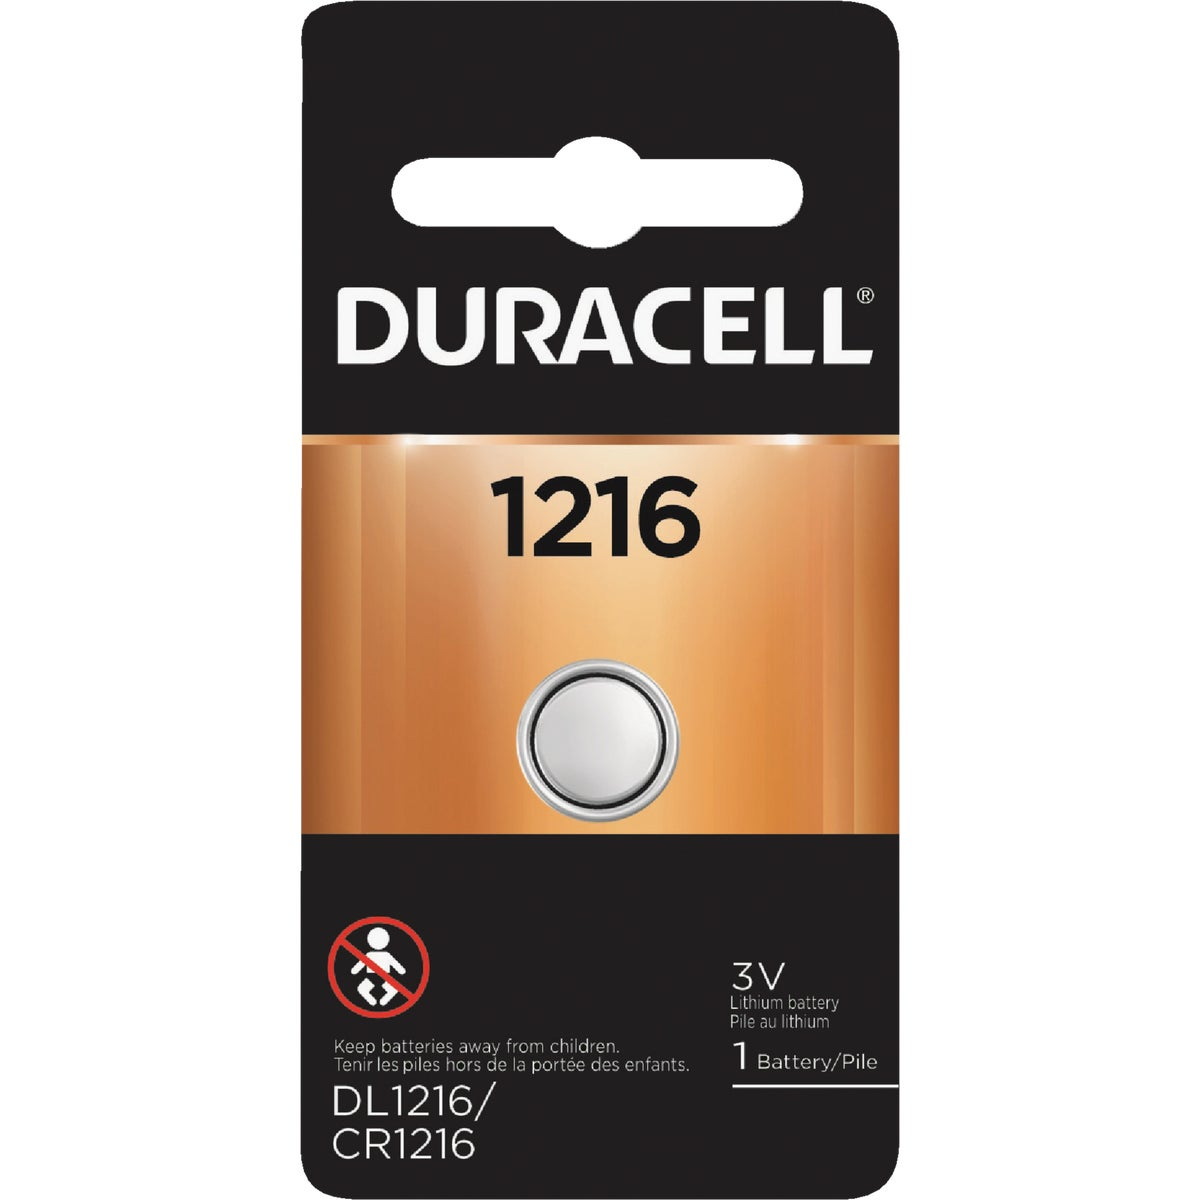 DL1216 3V WATCH BATTERY